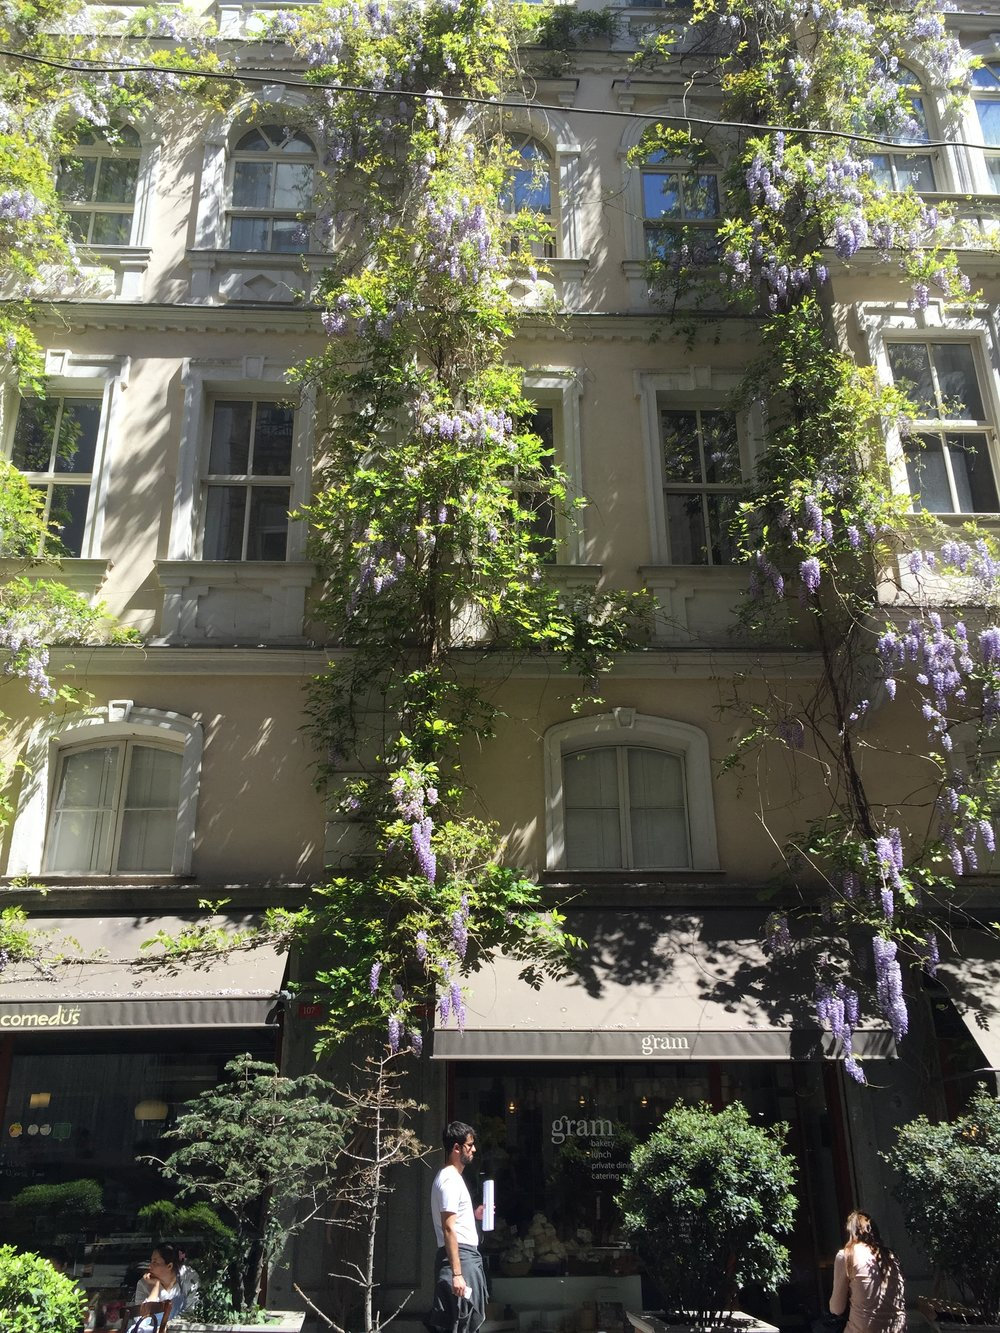 A wisteria laden cafe in the cool Beyoglu district